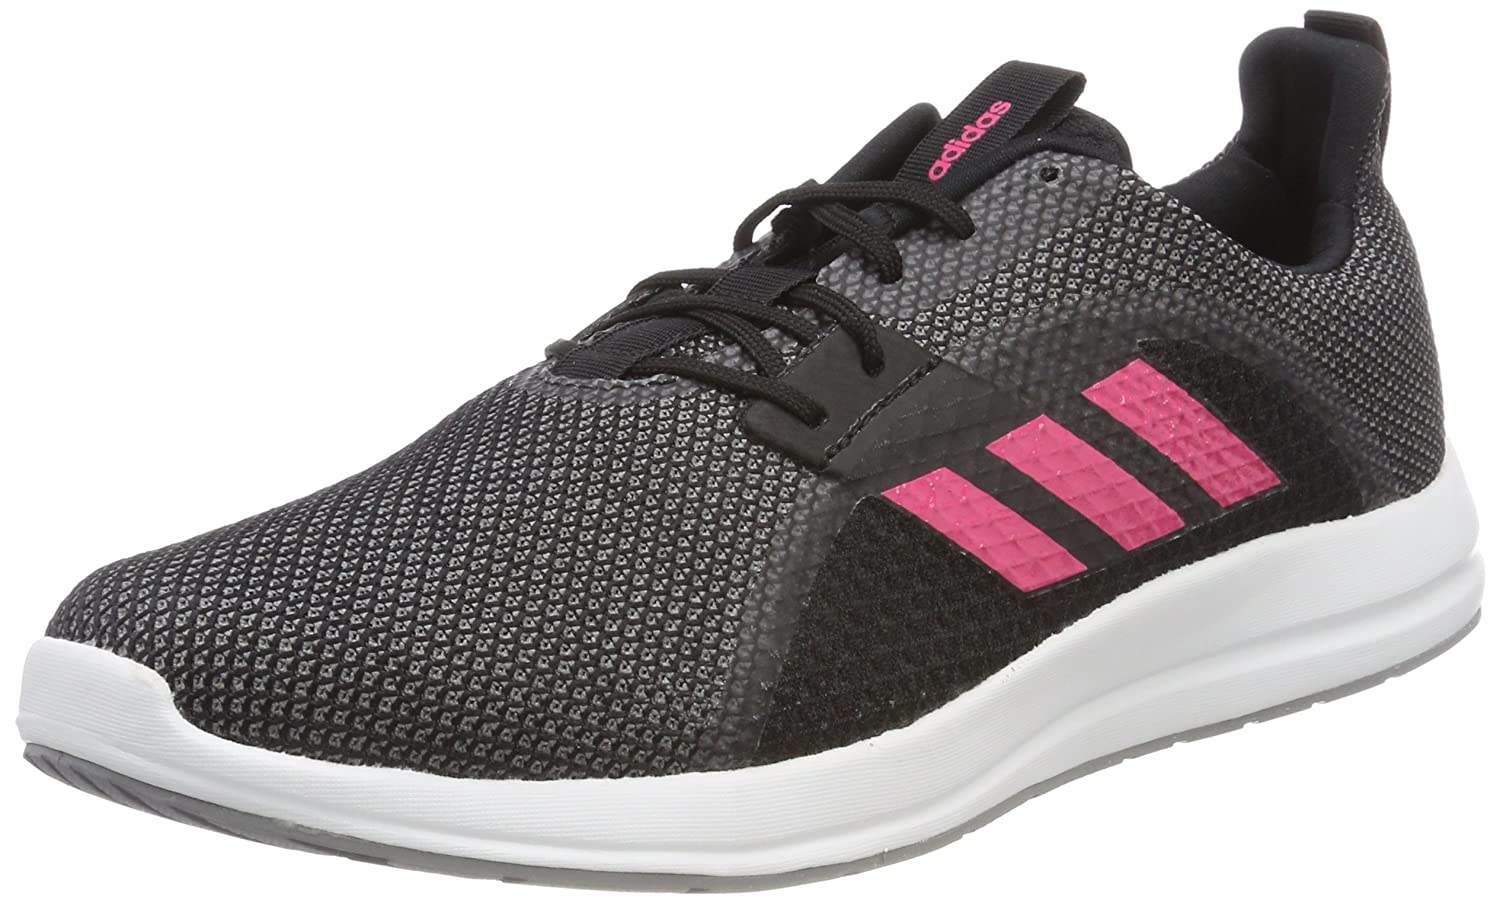 ADIDAS ELEMENT V SCHUHE RUNNING FRAUEN core blackreal pink